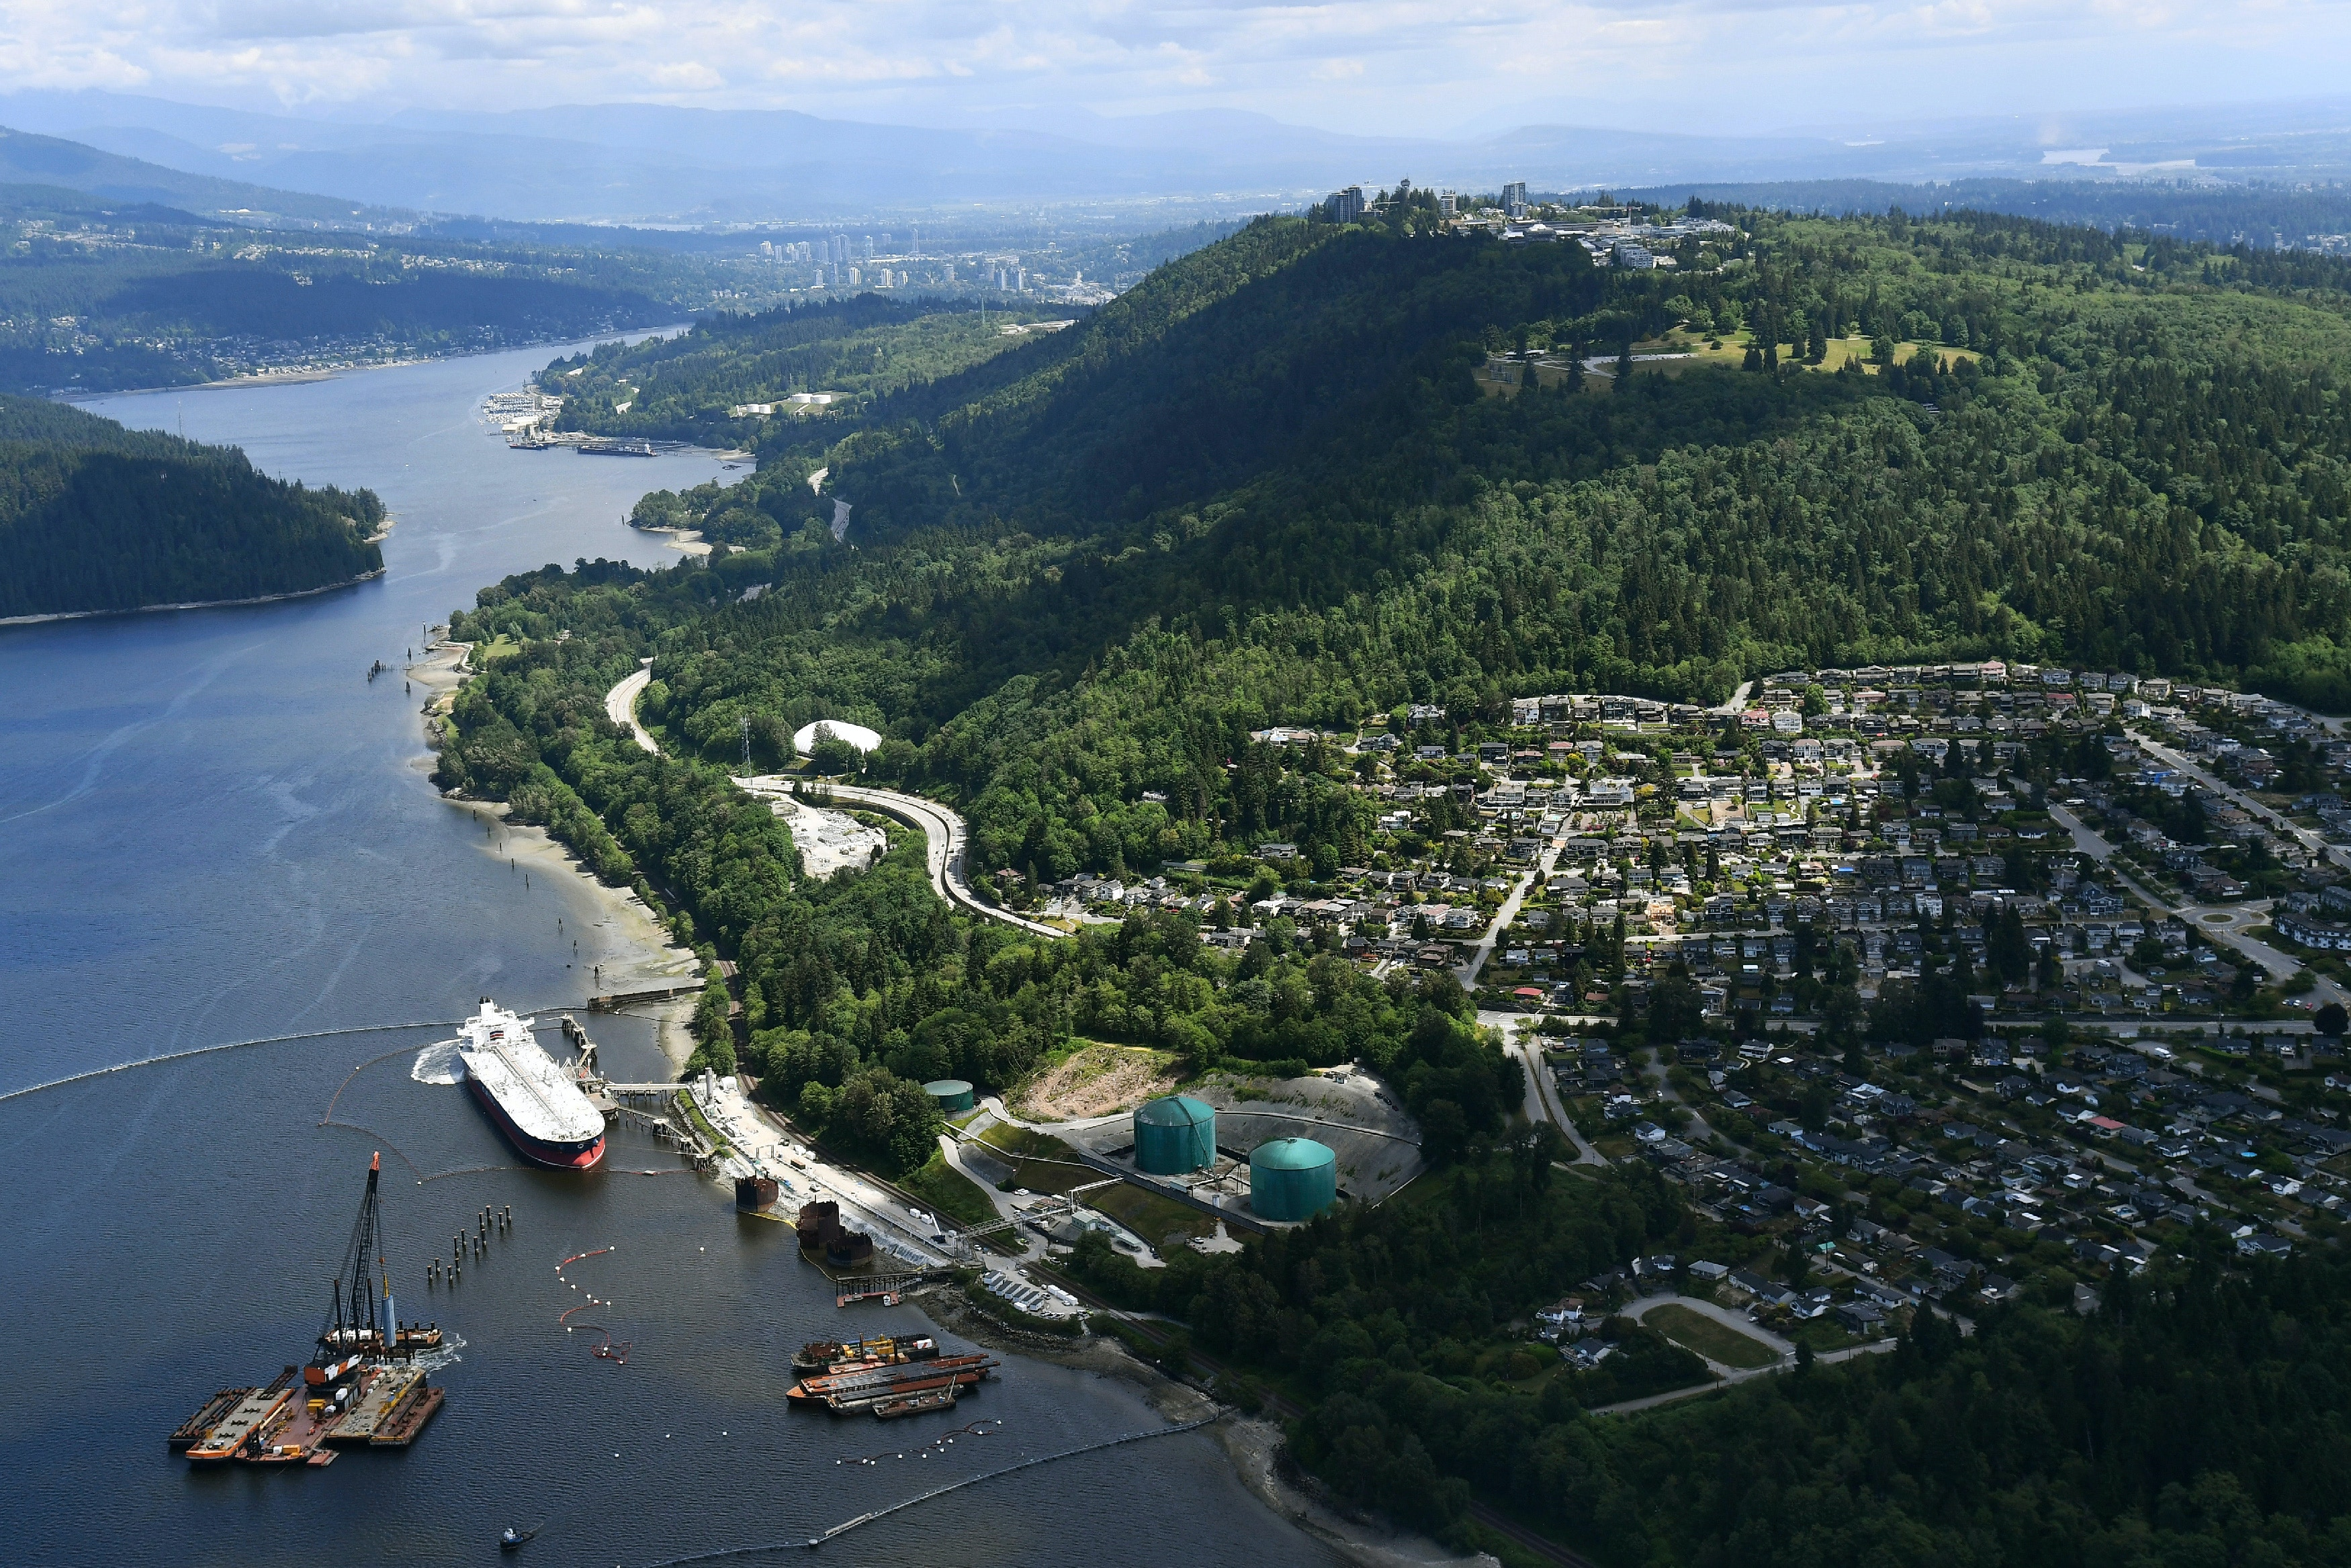 A aerial view of Kinder Morgan's Trans Mountain marine terminal, in Burnaby, British Columbia, is shown on Tuesday, May 29, 2018. The federal Liberal government is spending $4.5 billion to buy Trans Mountain and all of Kinder Morgan Canada's core assets, Finance Minister Bill Morneau said Tuesday as he unveiled the government's long-awaited, big-budget strategy to save the plan to expand the oil pipeline. (Jonathan Hayward/The Canadian Press via AP)